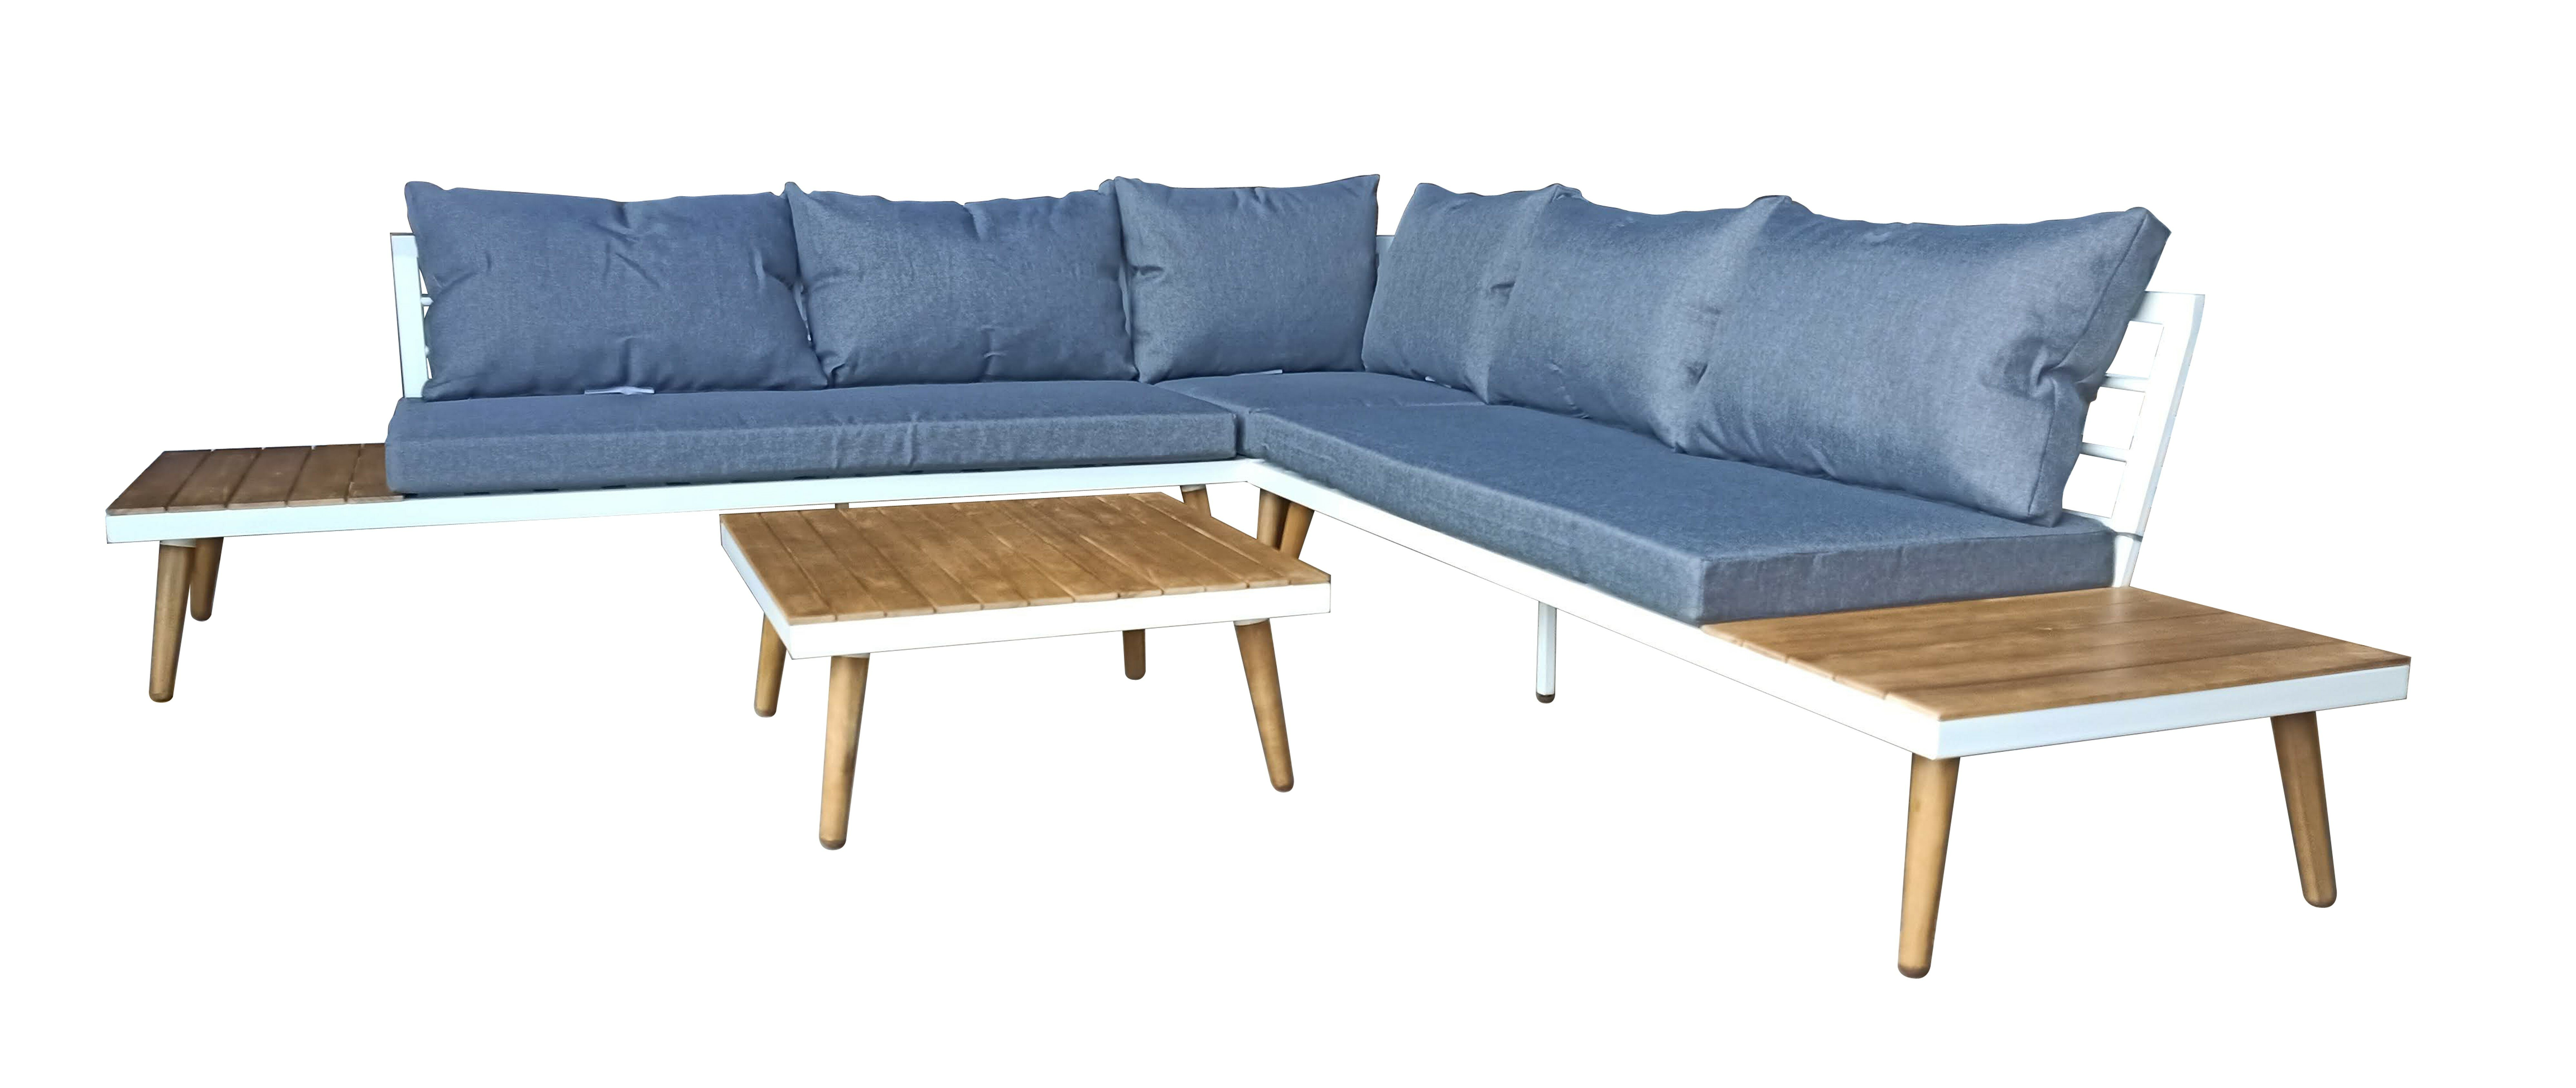 Corrigan Studio Penney 2 Piece Sectional Seating Group with